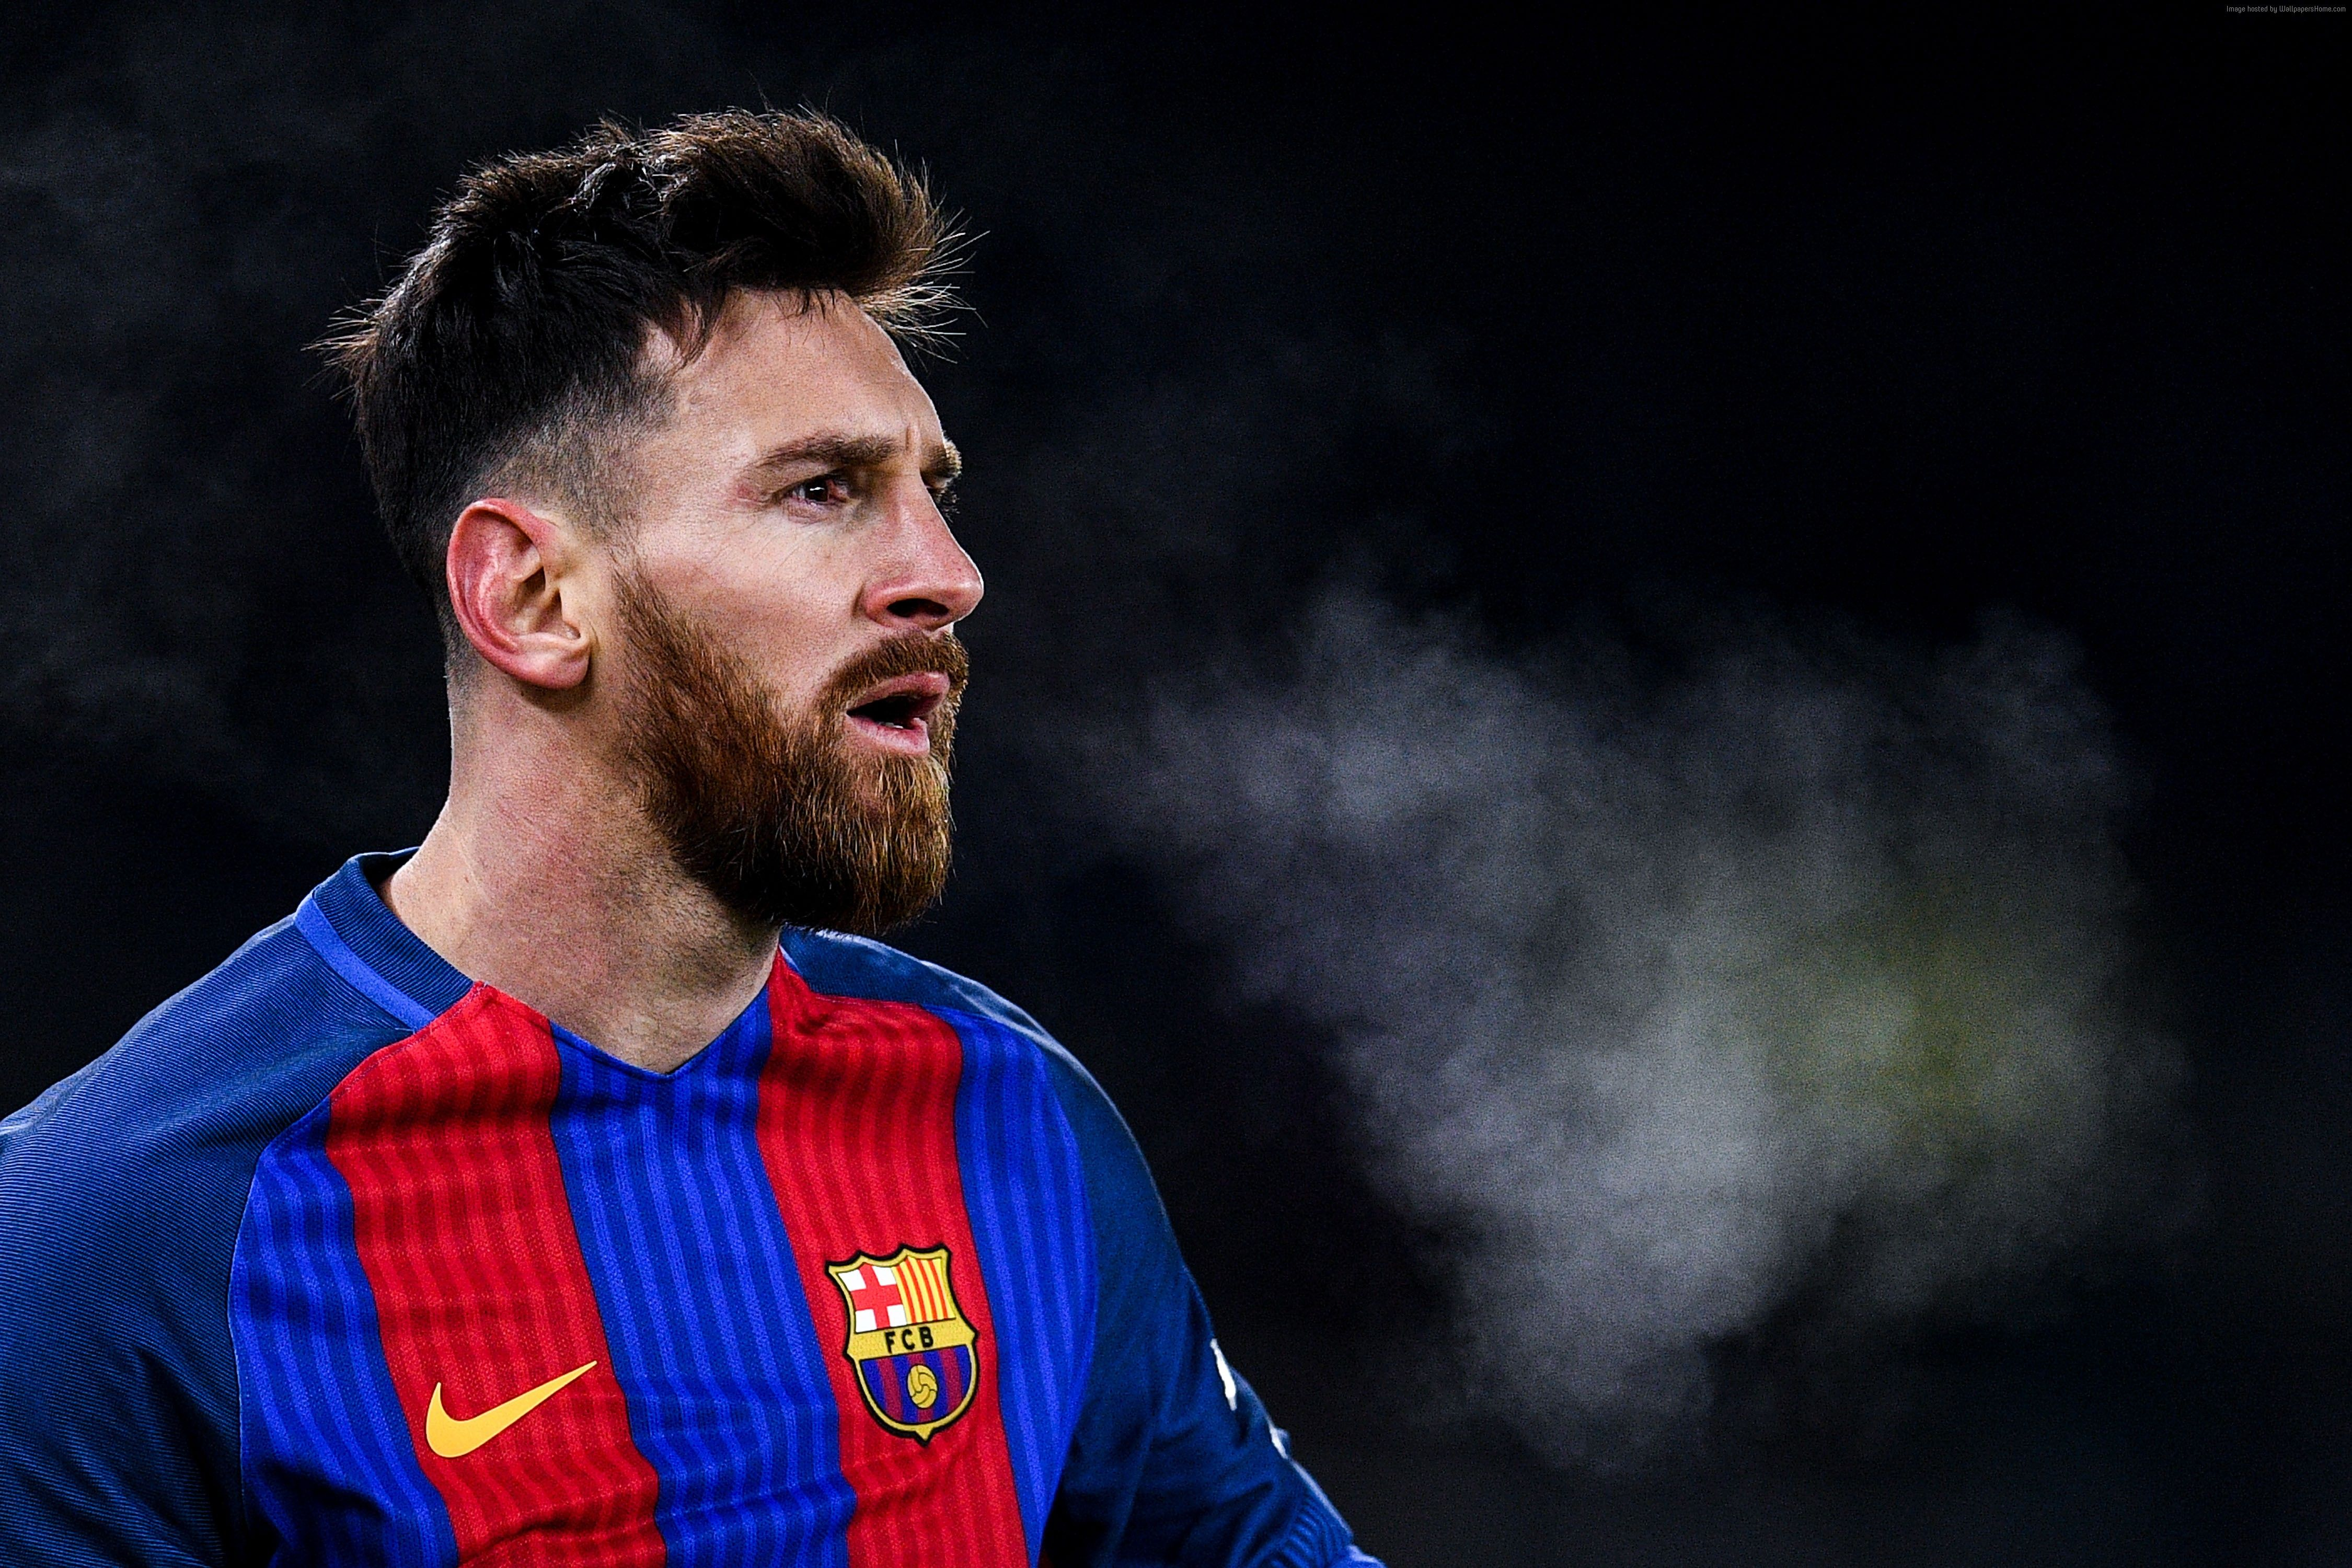 Wallpapers Lionel Messi, soccer, football, The best players 2016